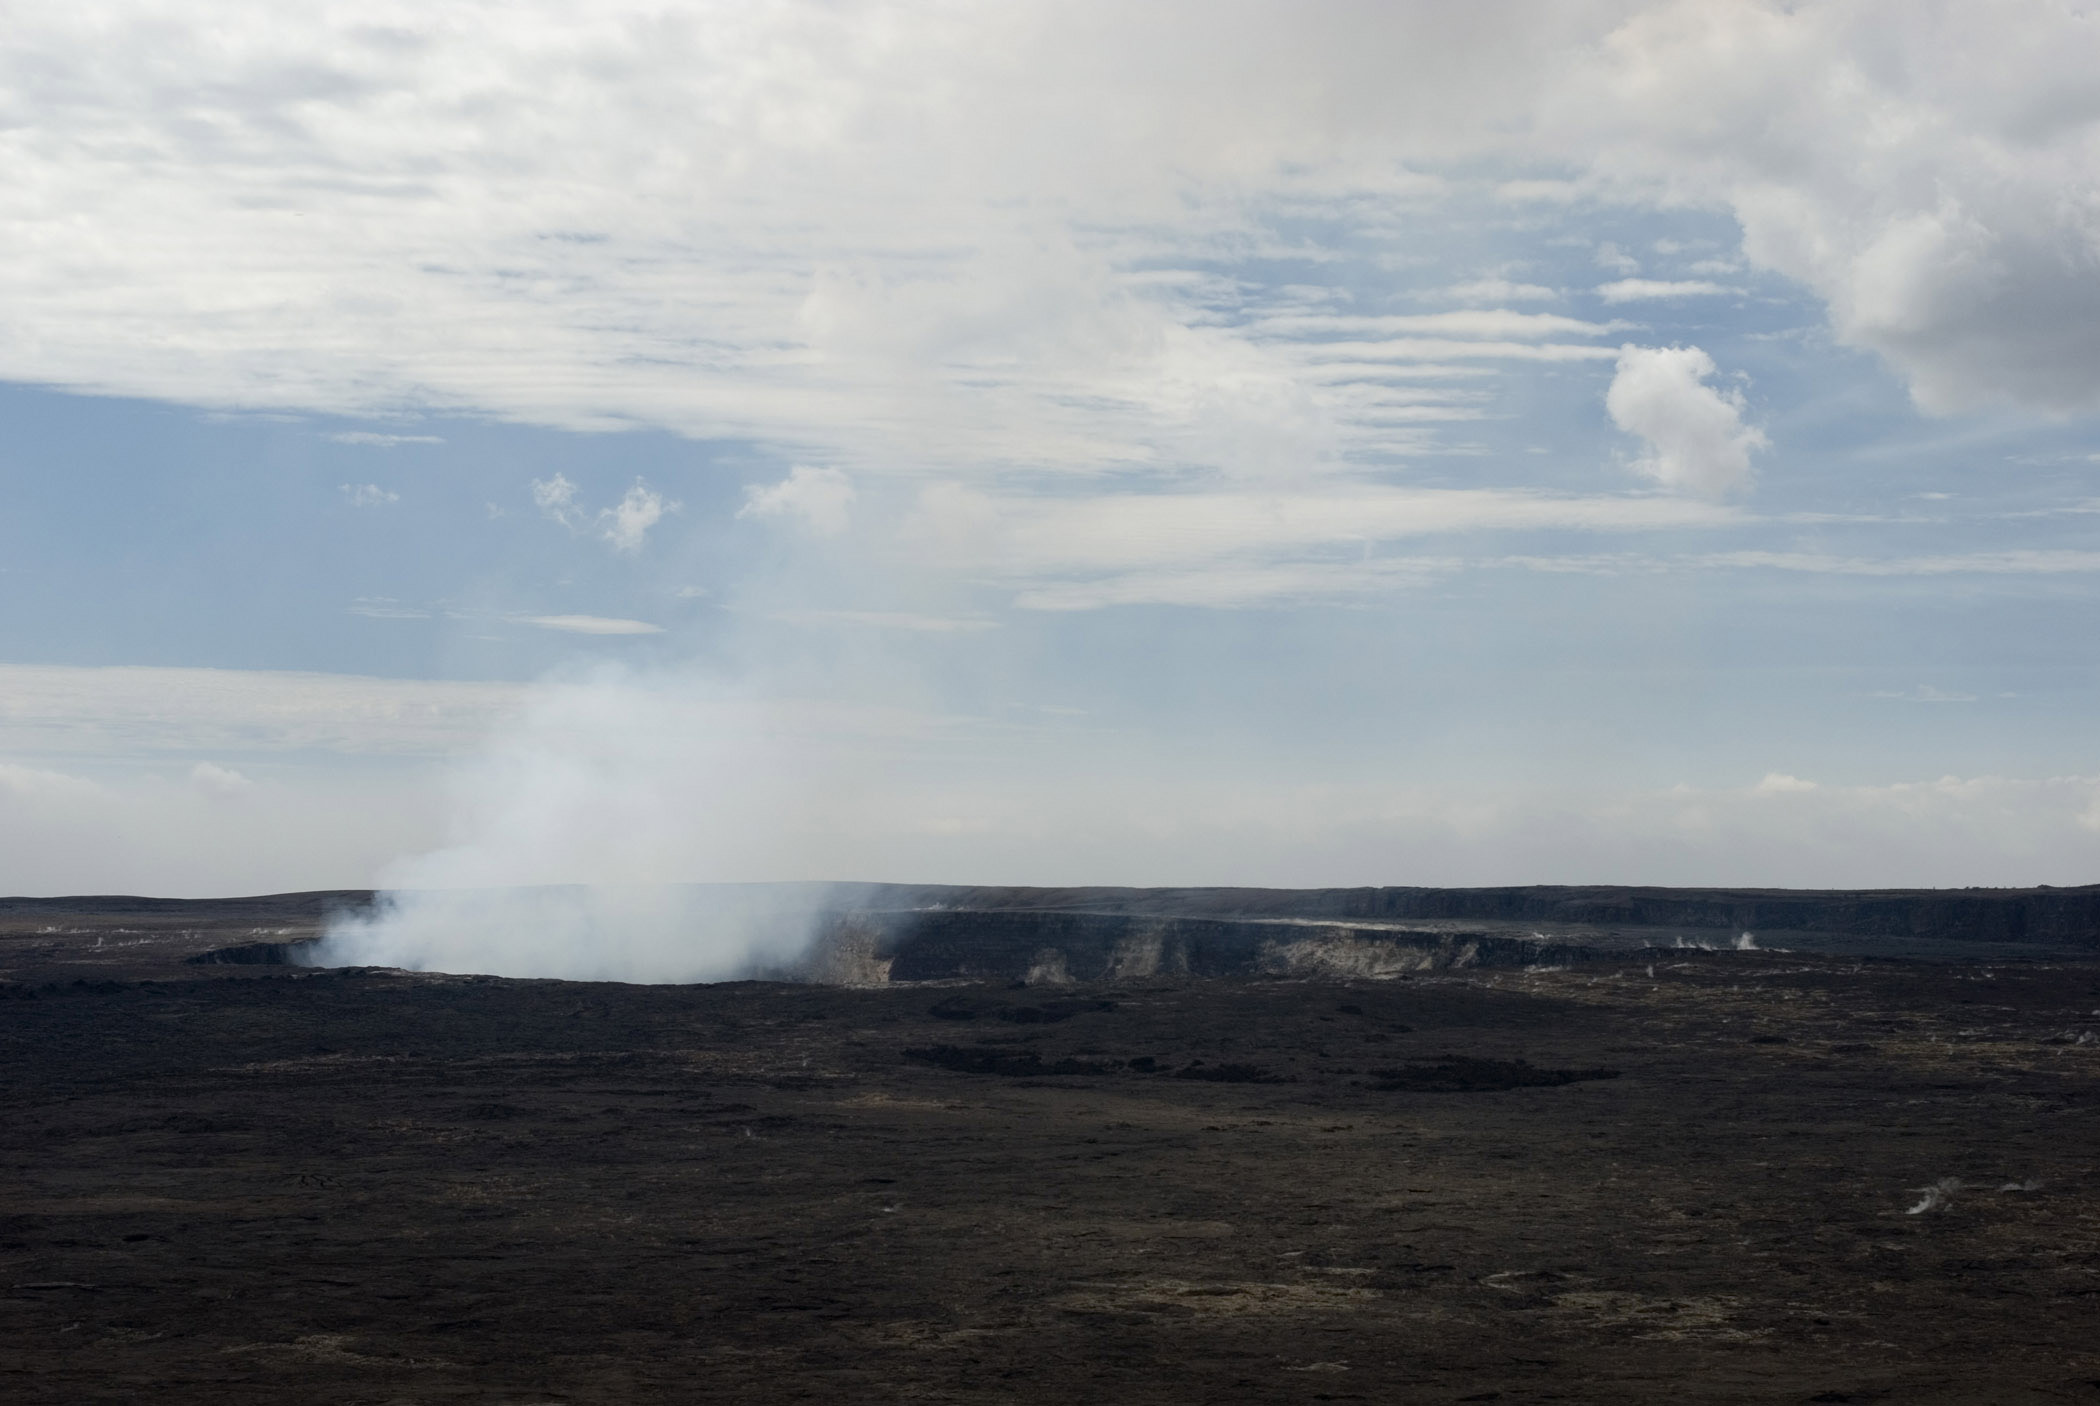 Smoke at Volcanoes National Park in Hawaii. Isolated on Lighter Blue and White Sky Background.